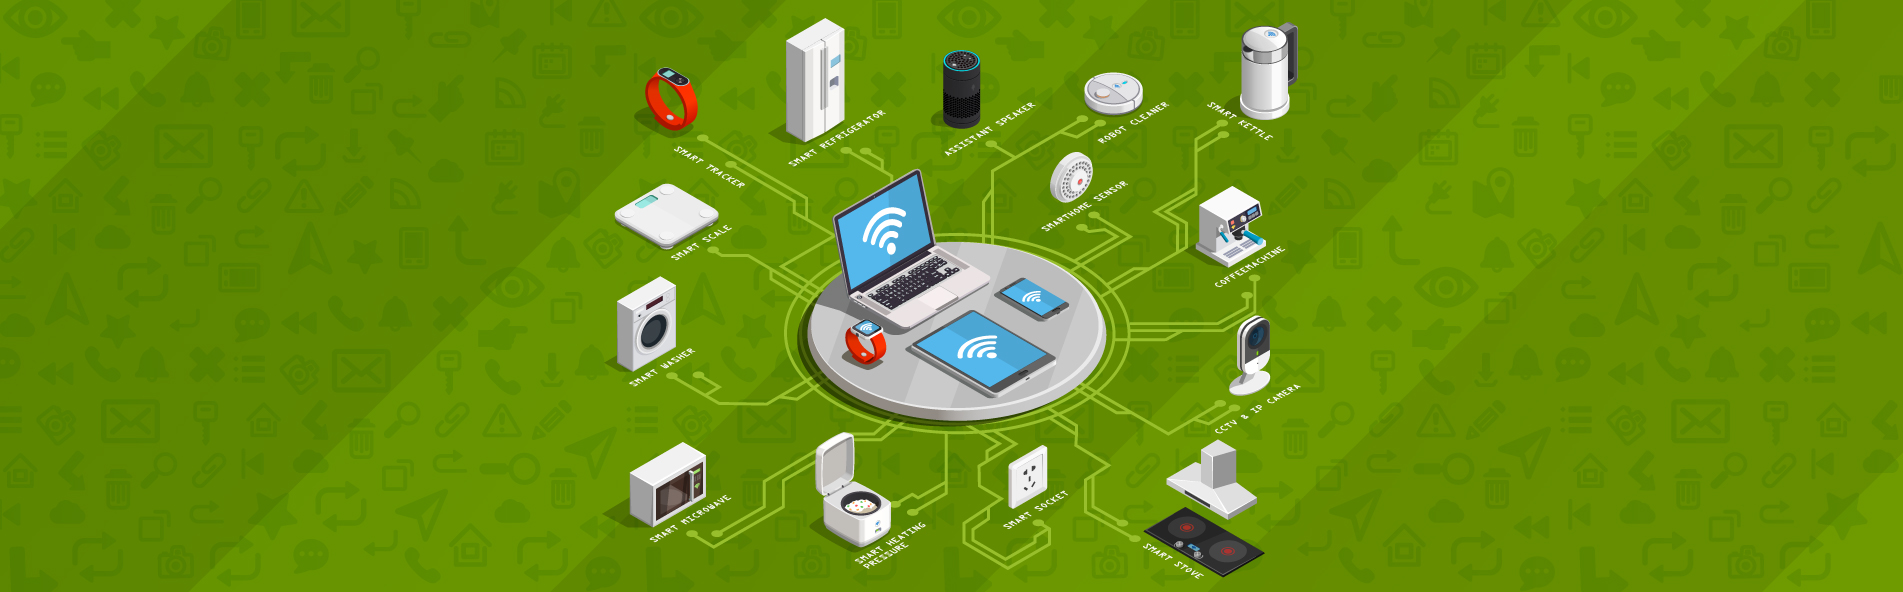 Top 5 IoT Testing Challenges for Testing Experts